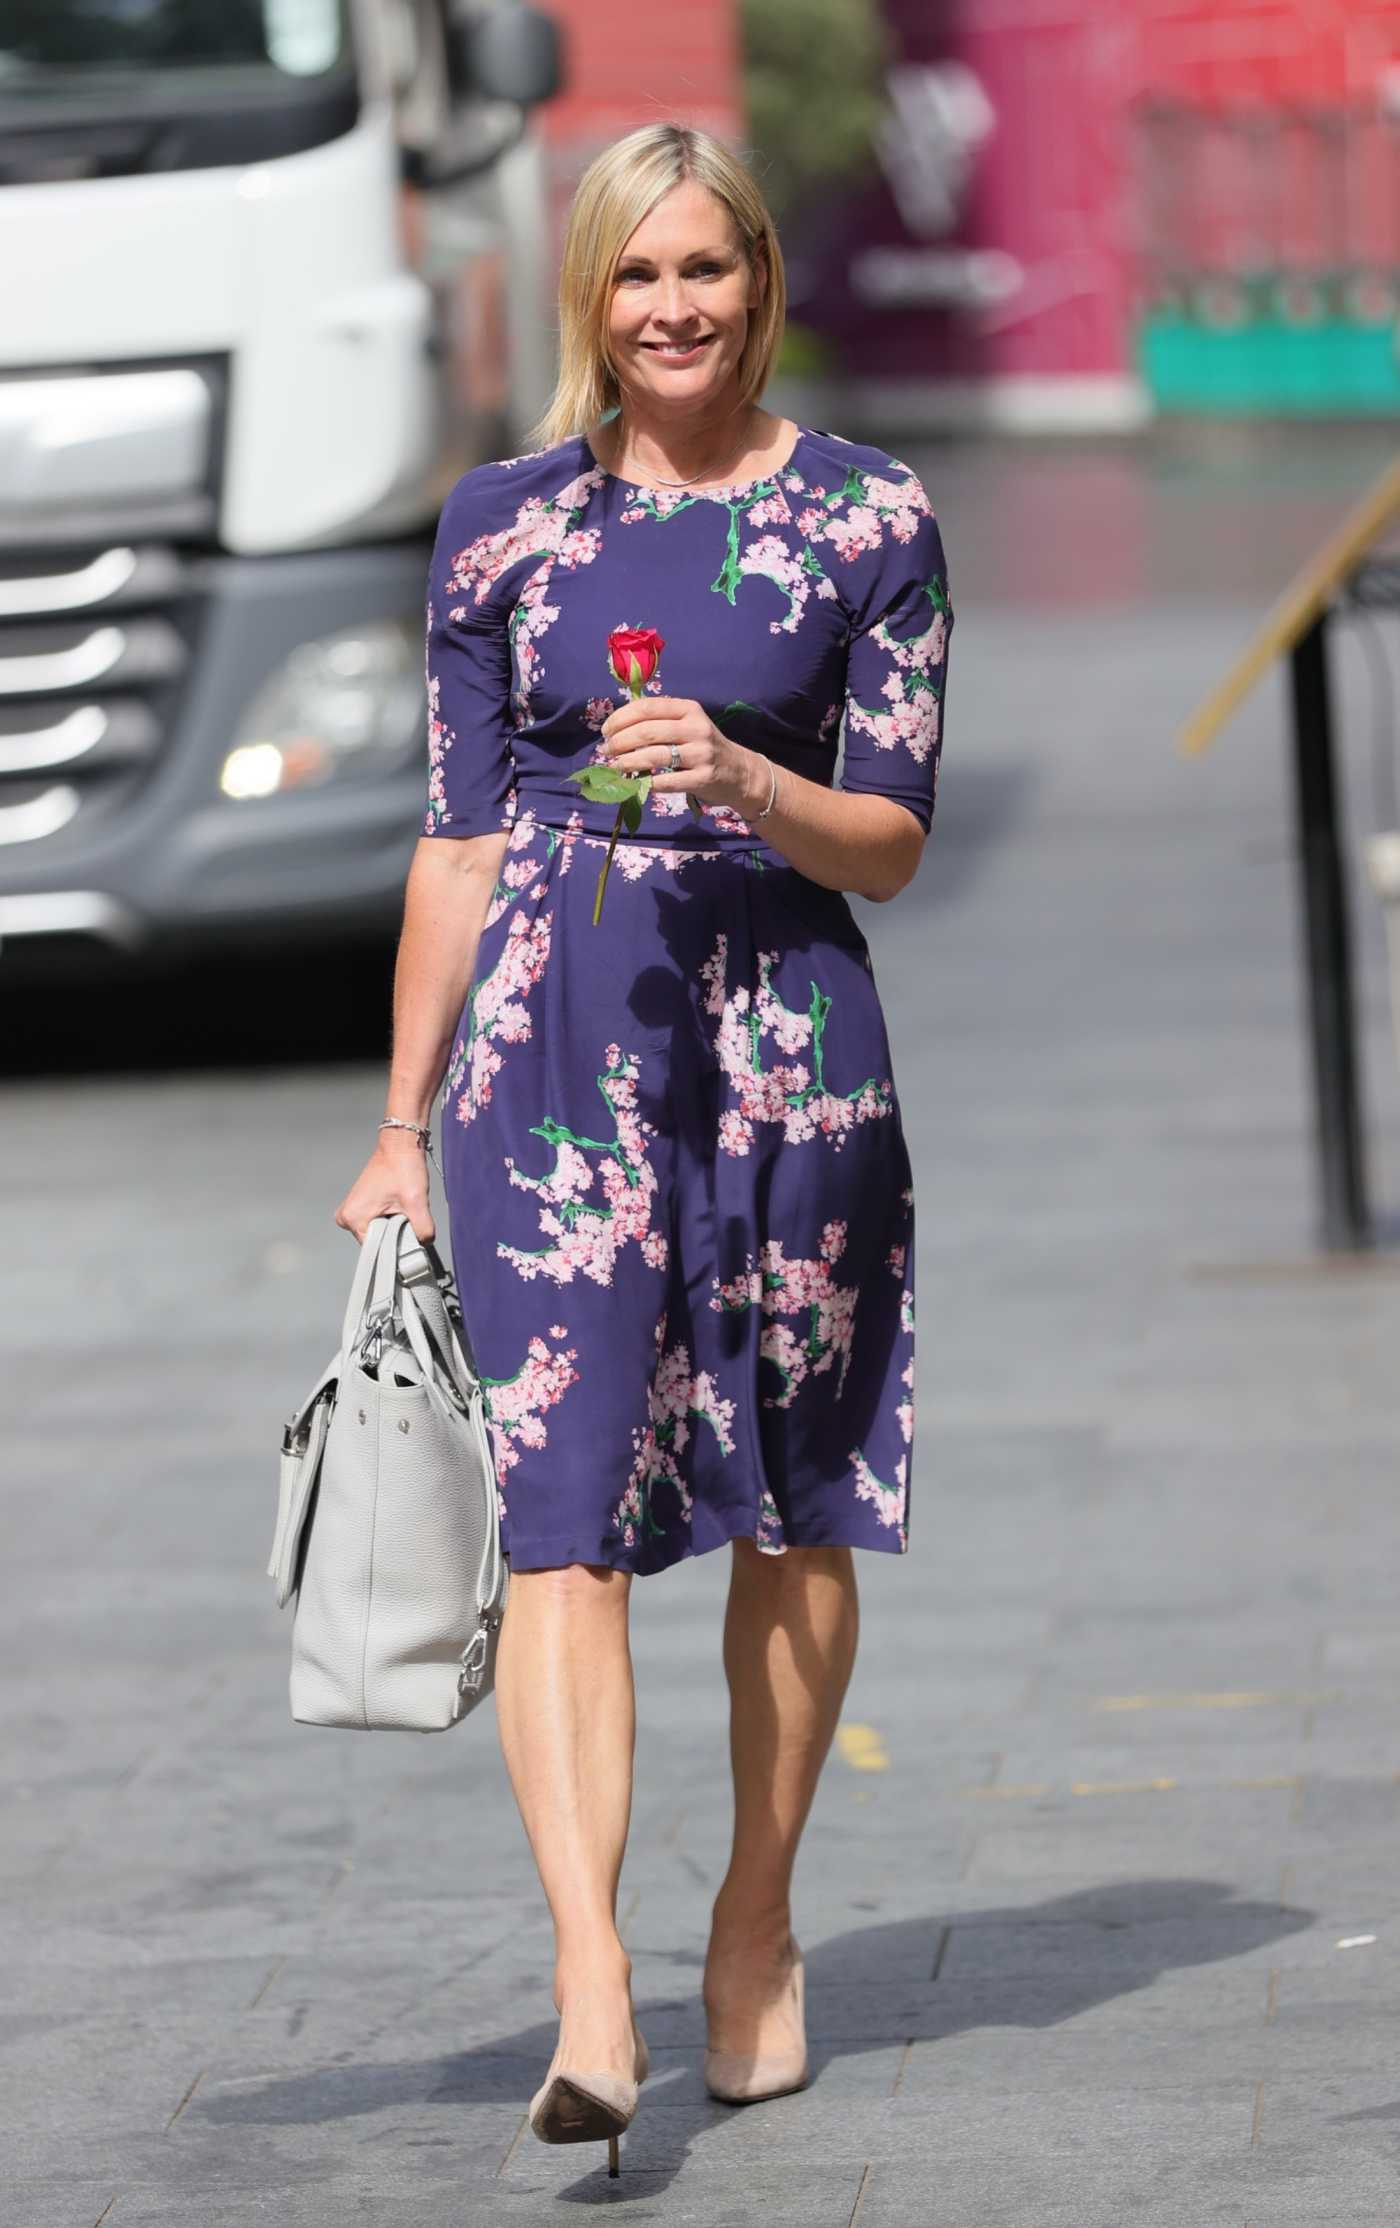 Jenni Falconer in a Blue Floral Dress Leaves the Smooth Radio in London 06/07/2021